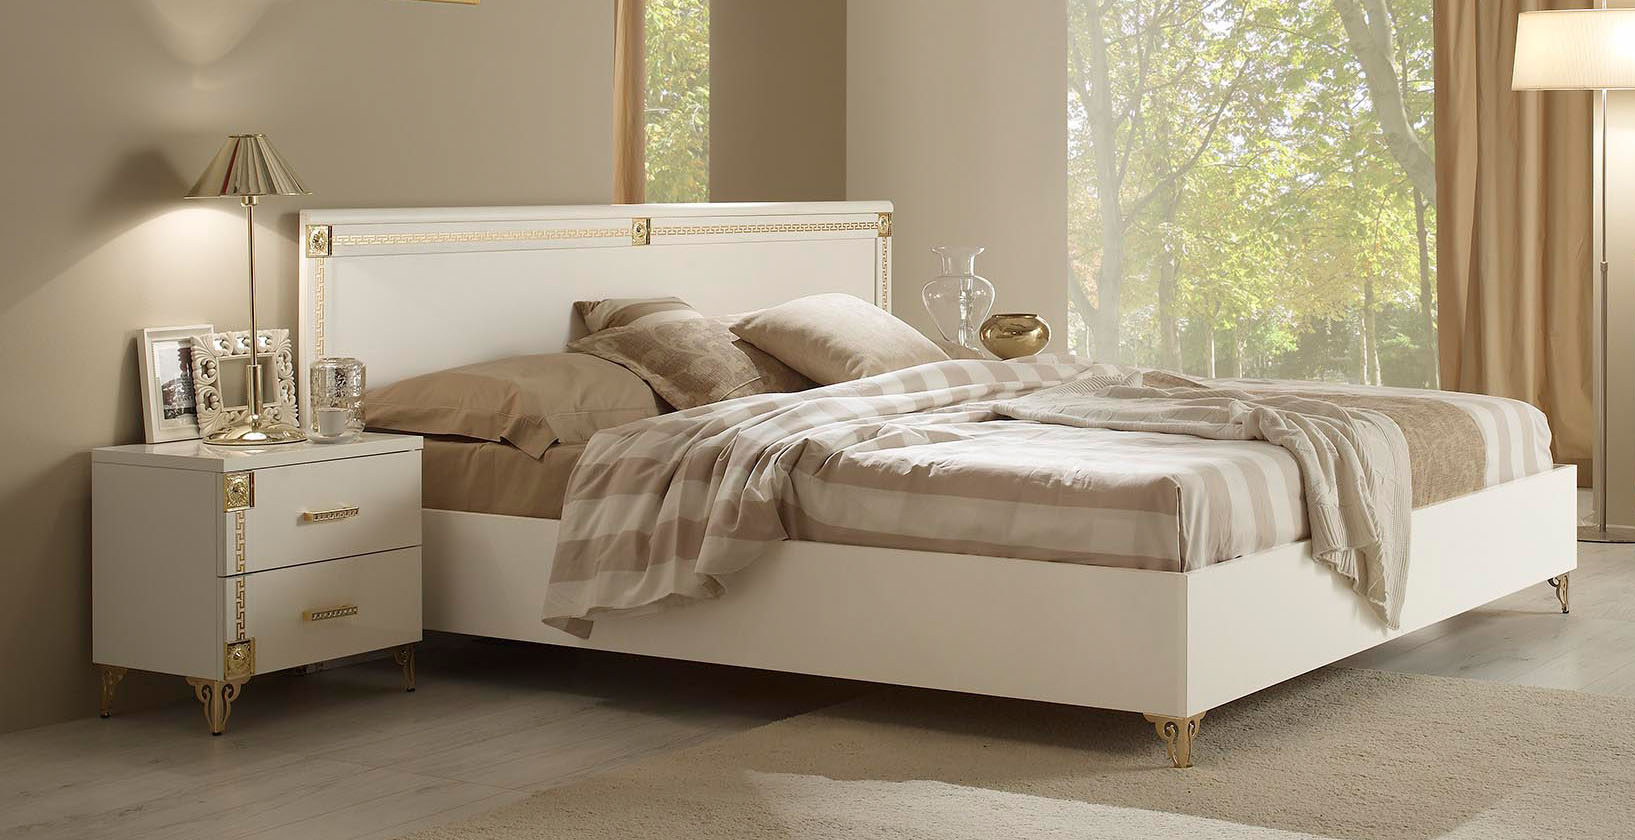 Modern Platform Beds, Master Bedroom Furniture. Lacquered Made in Italy ...